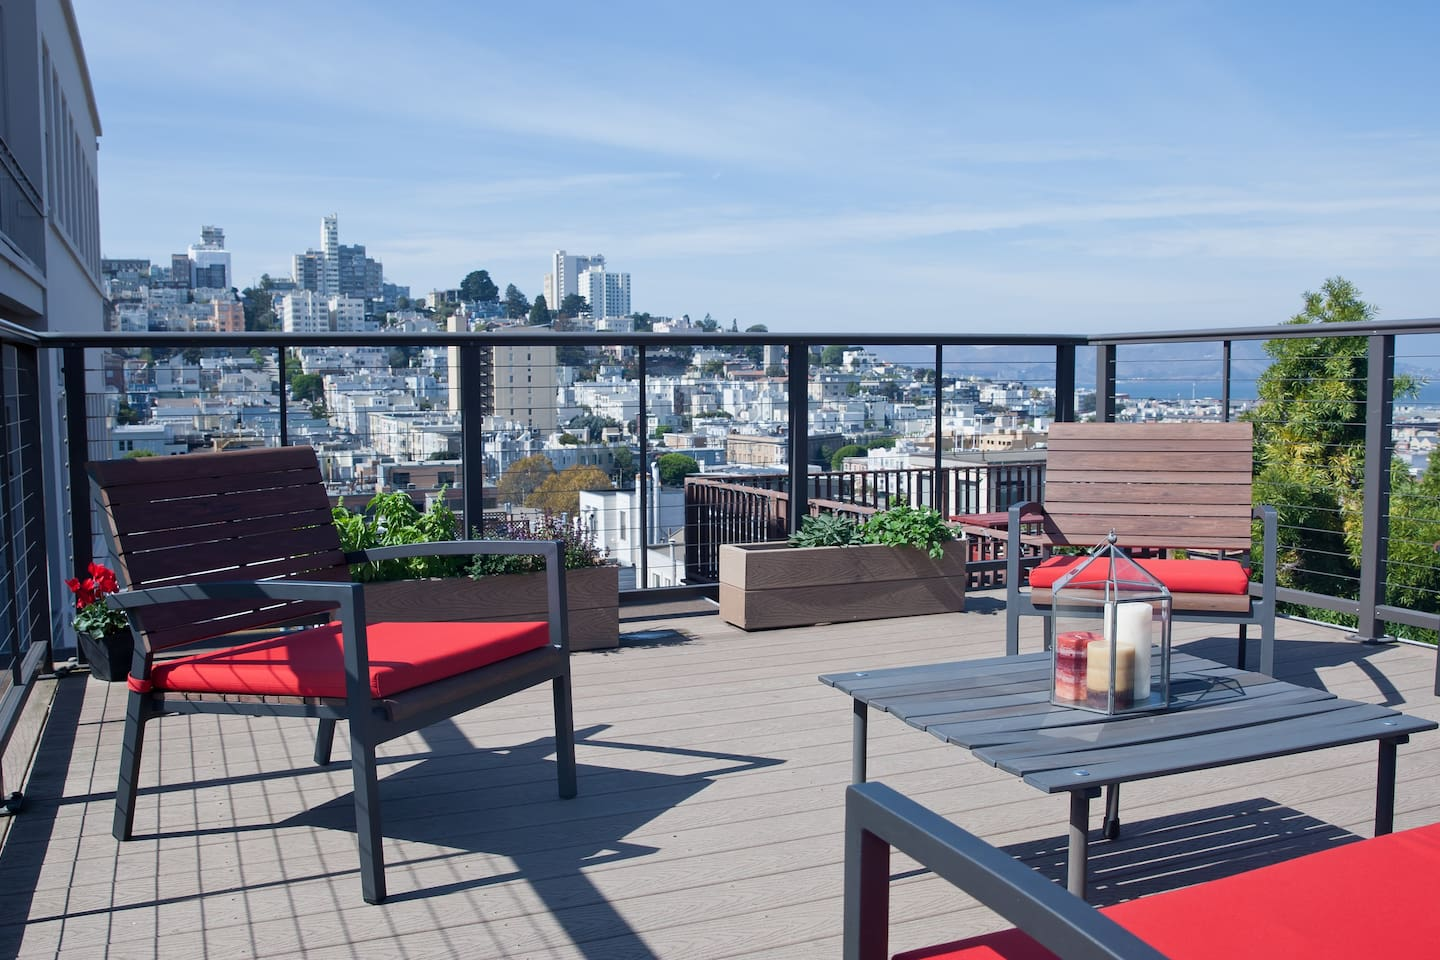 Private roofdeck and herb garden